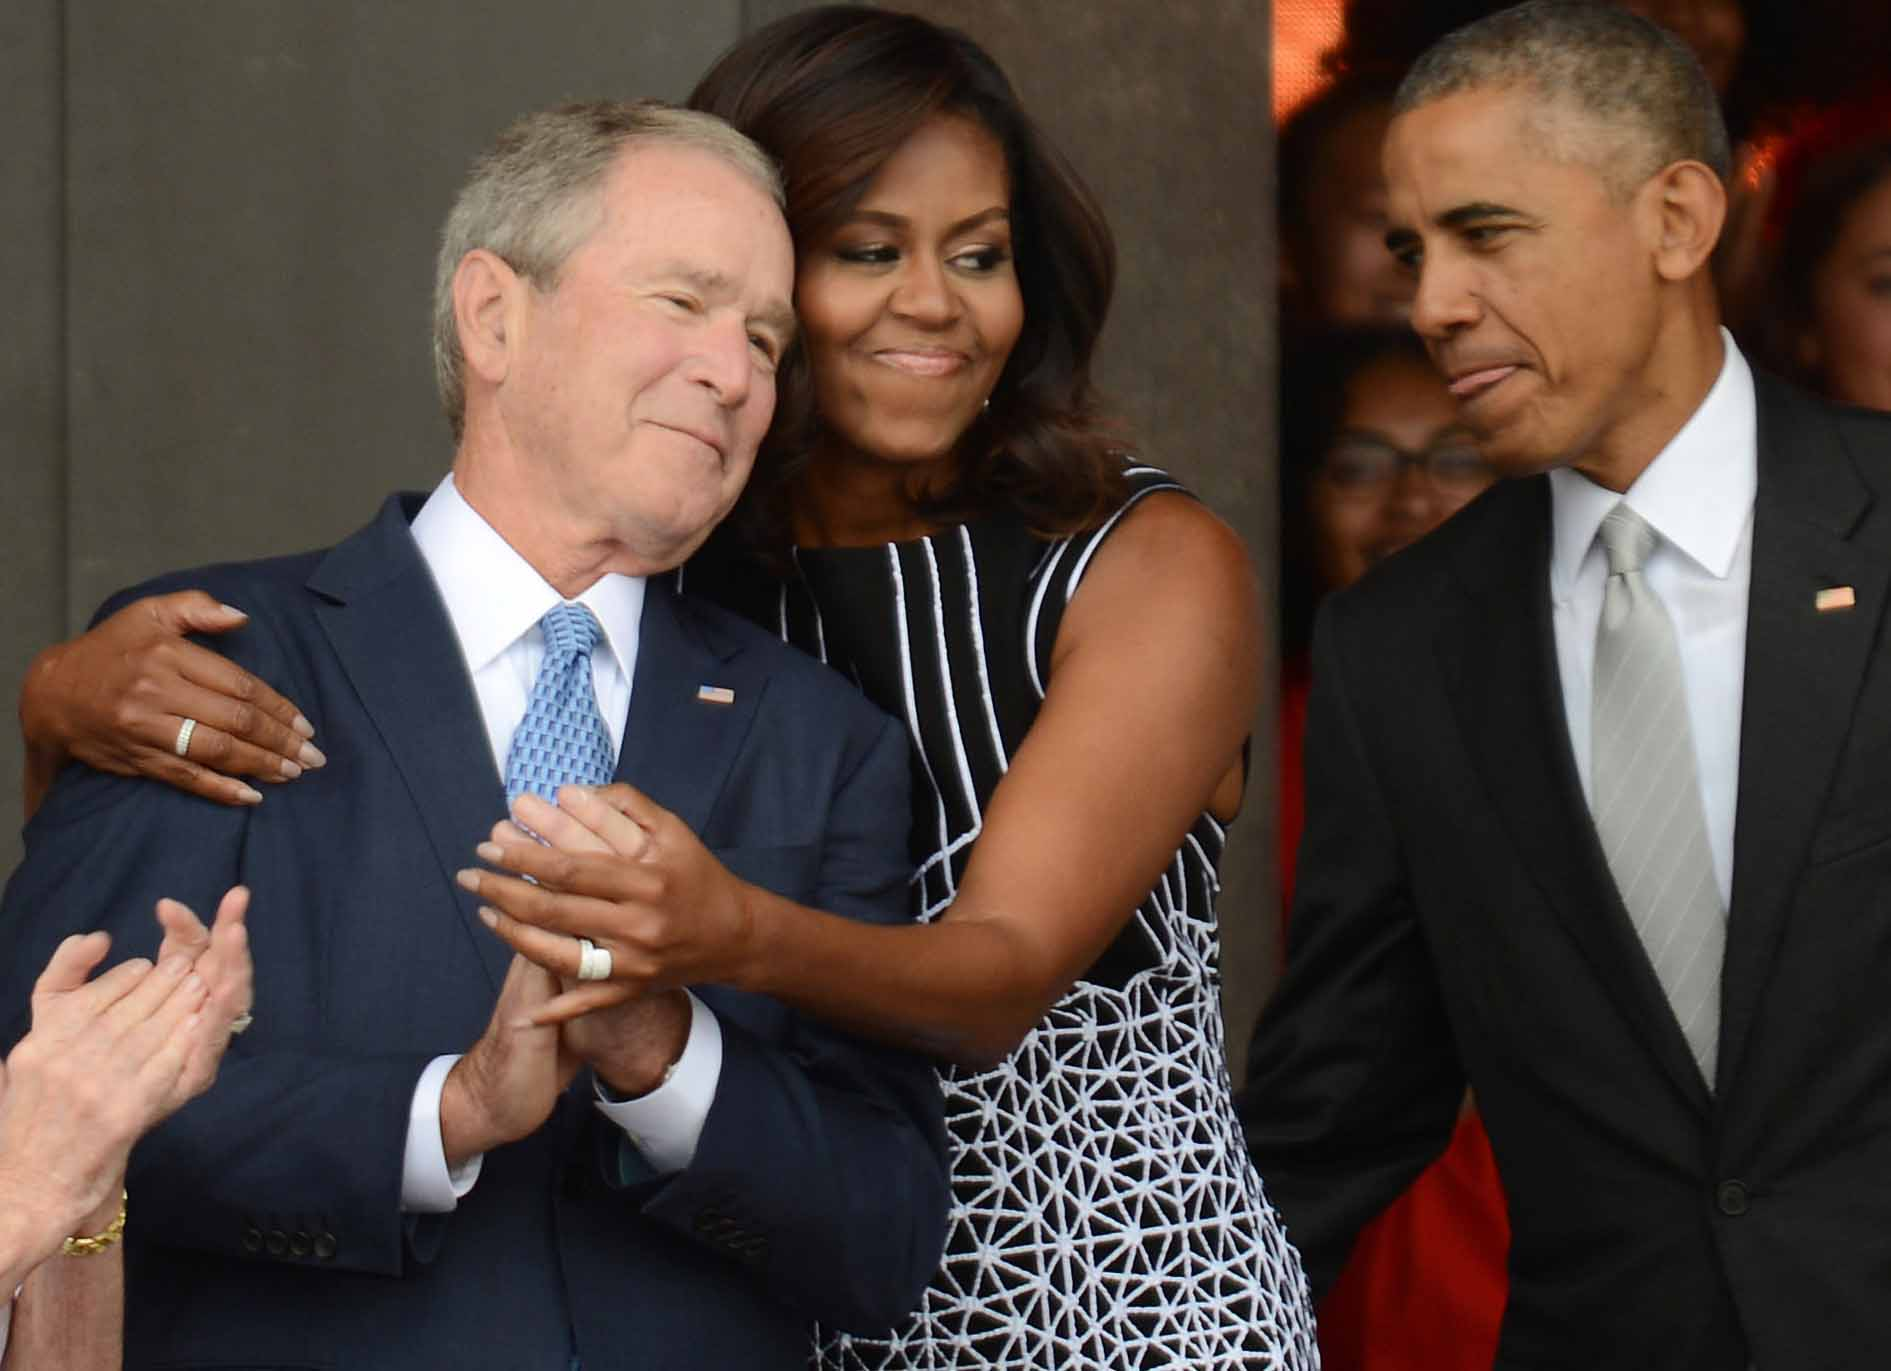 michelle obama hugs george w bush at opening of african